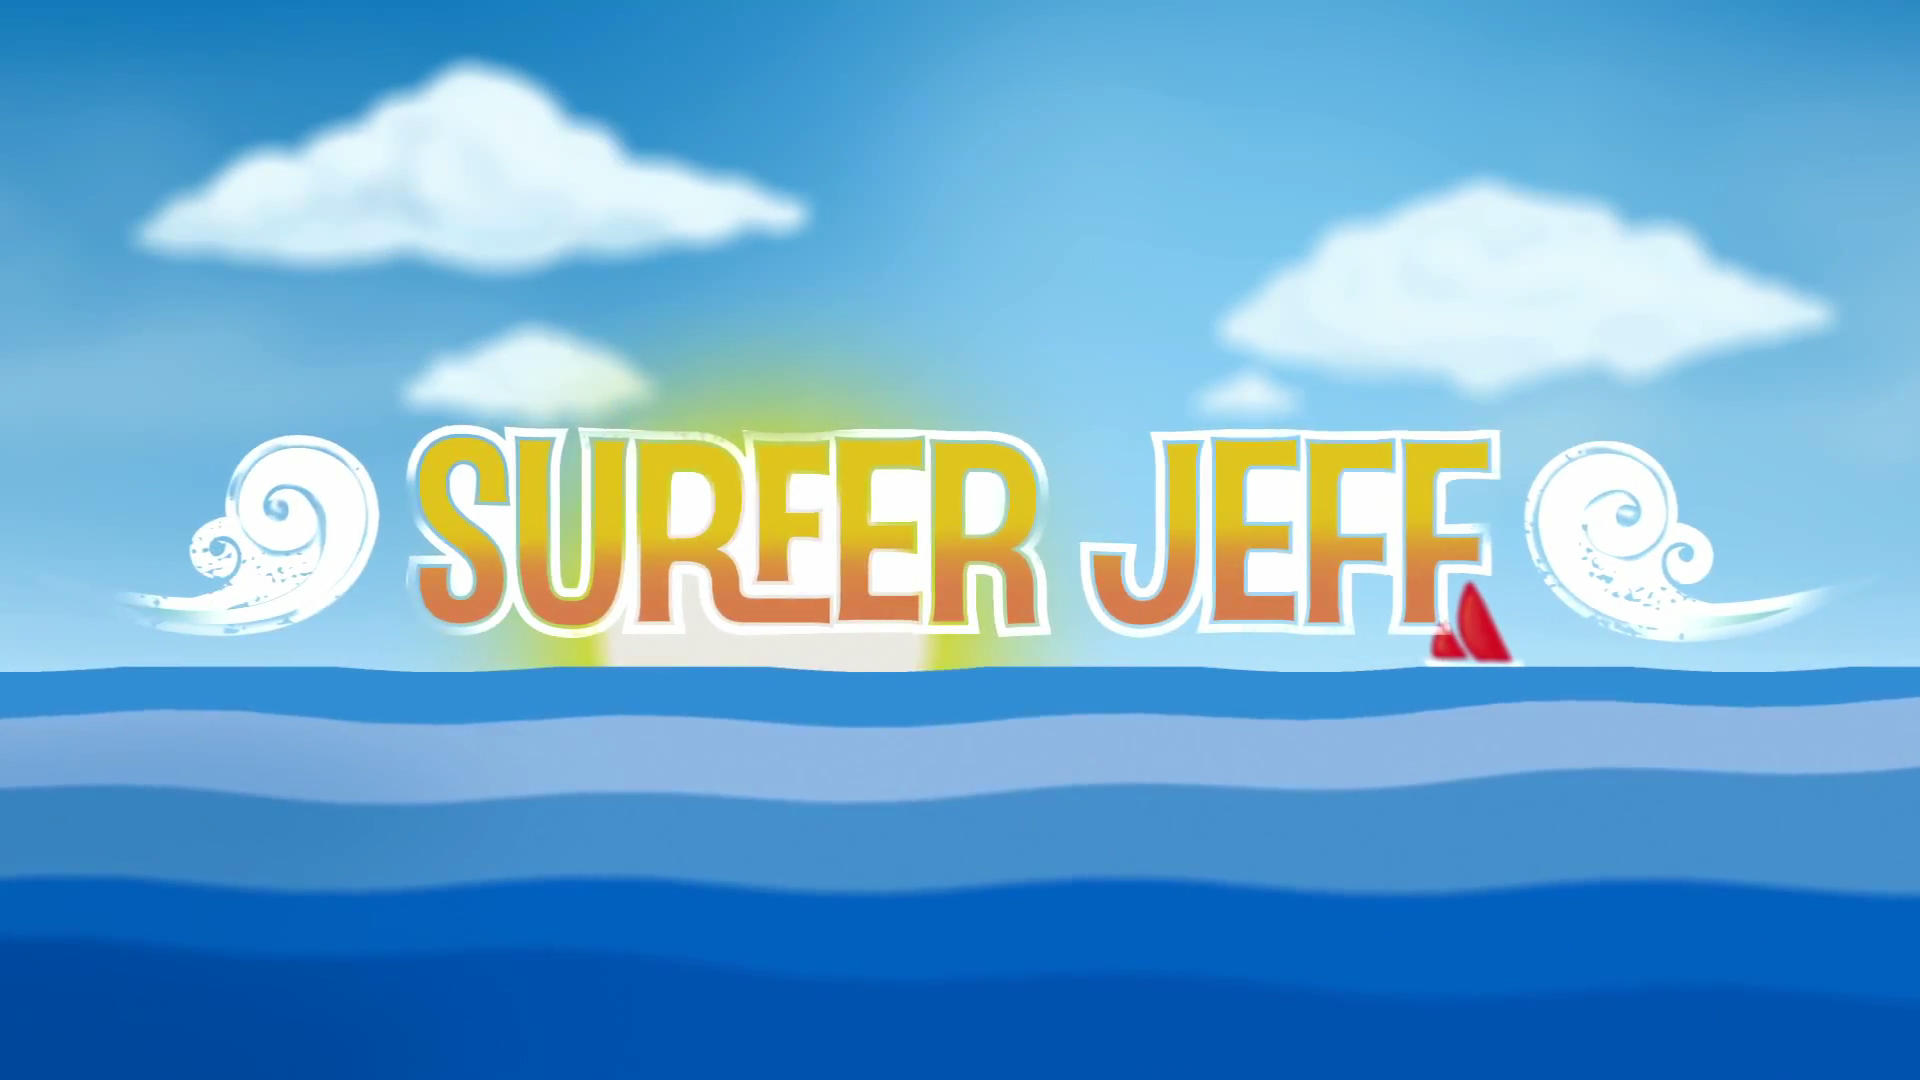 Surfer Jeff (video)/Gallery